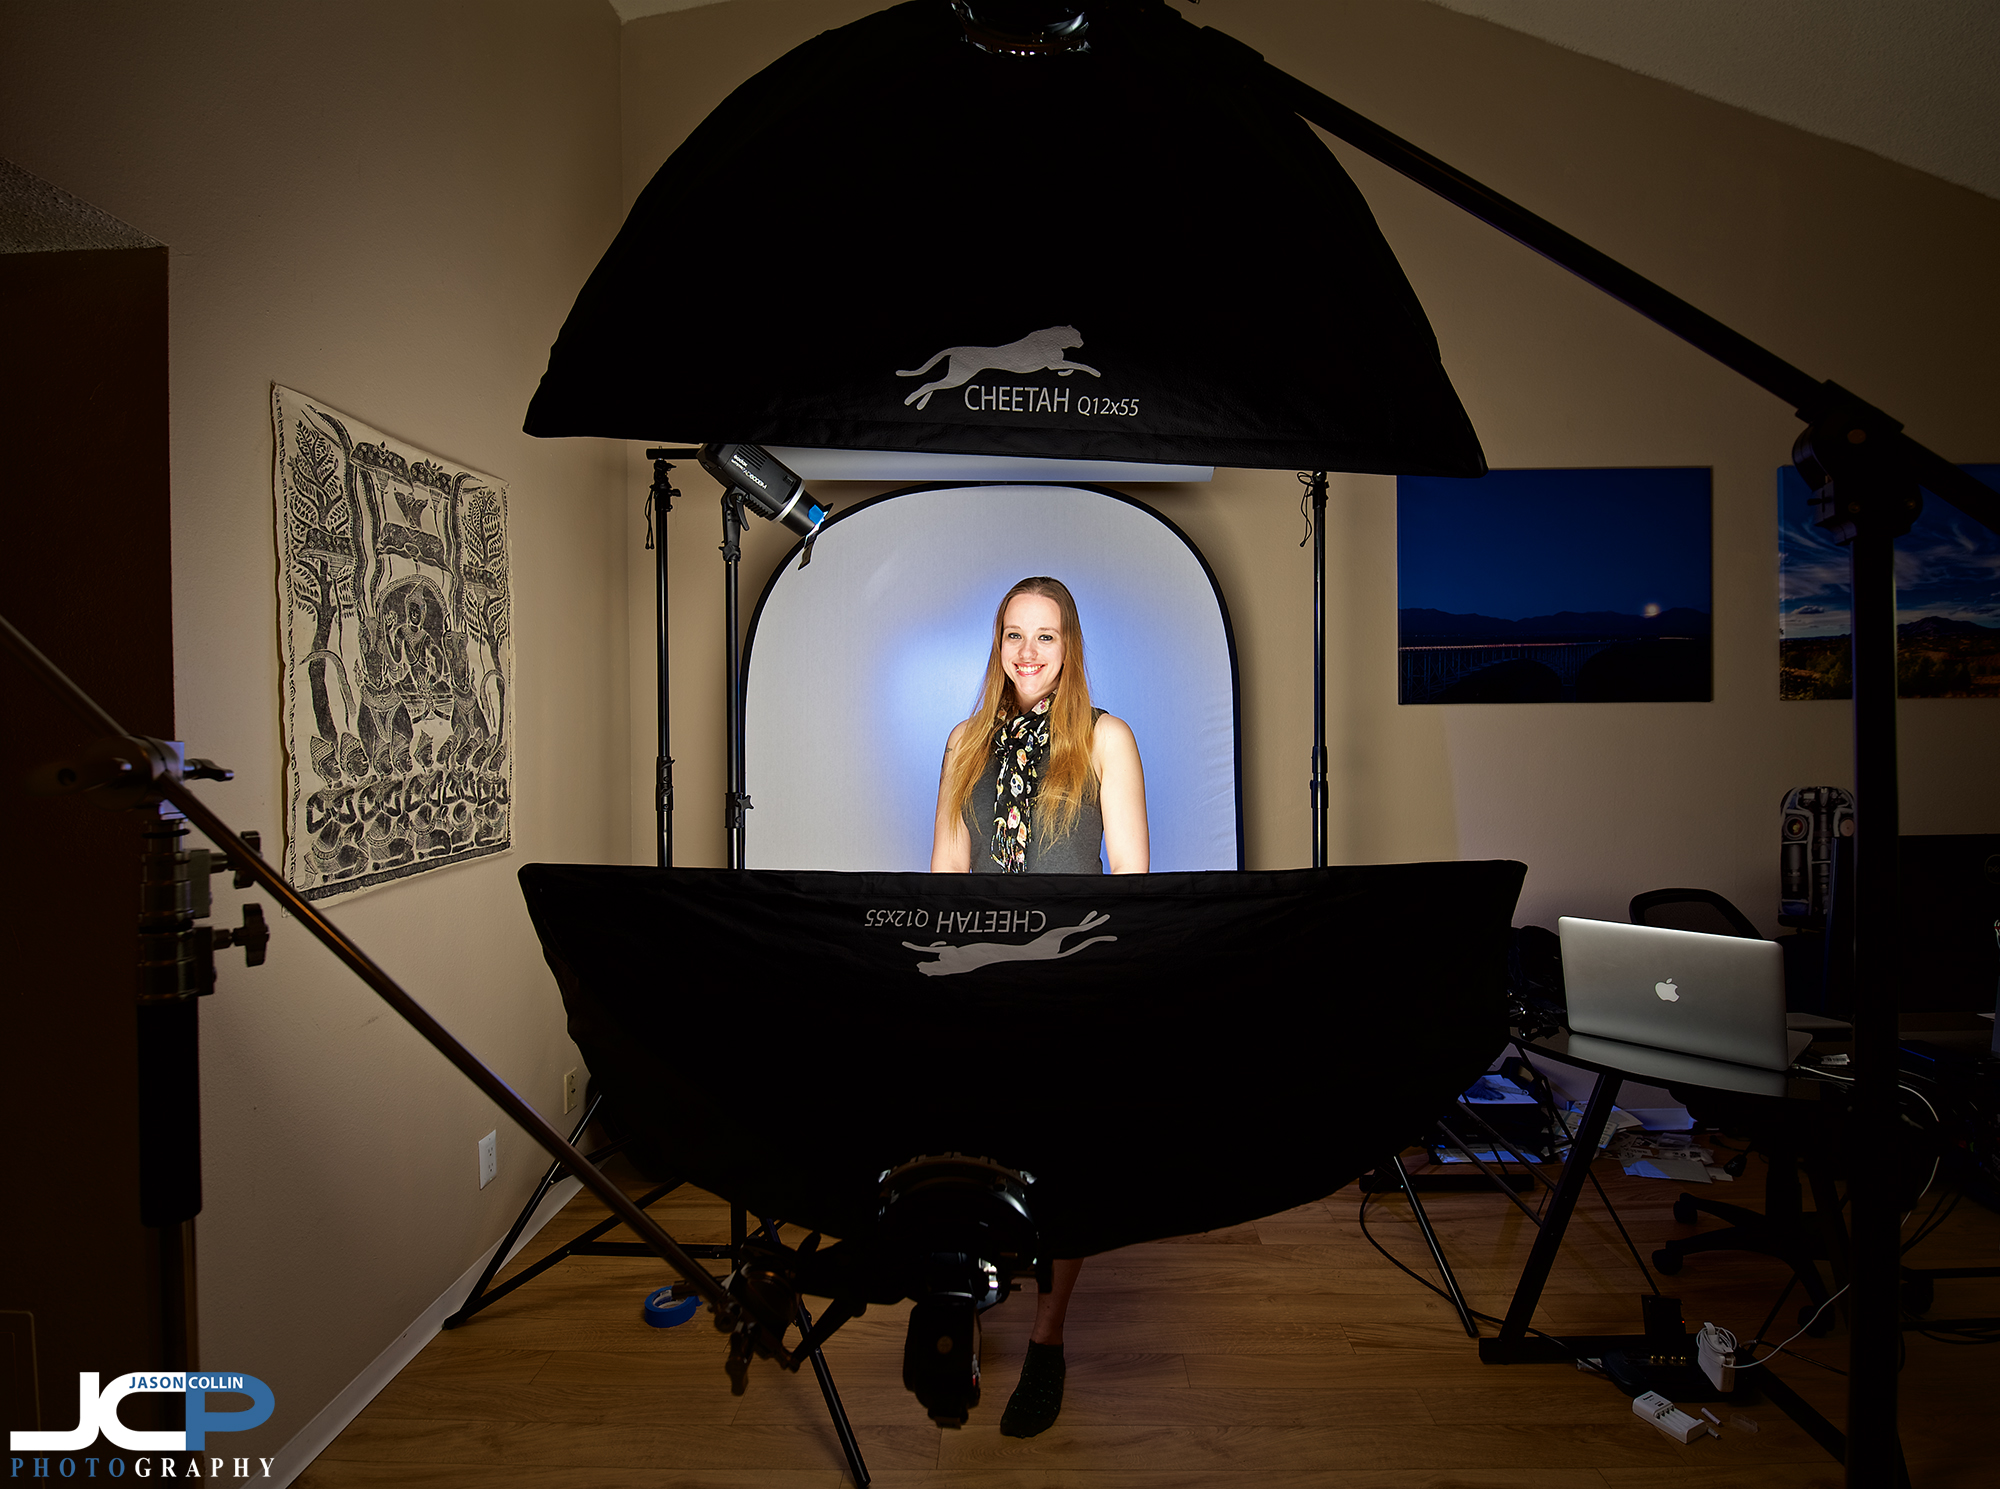 Clamshell lighting setup at the JCP Home Studio in Albuquerque New Mexico offering professional headshots of many different styles!